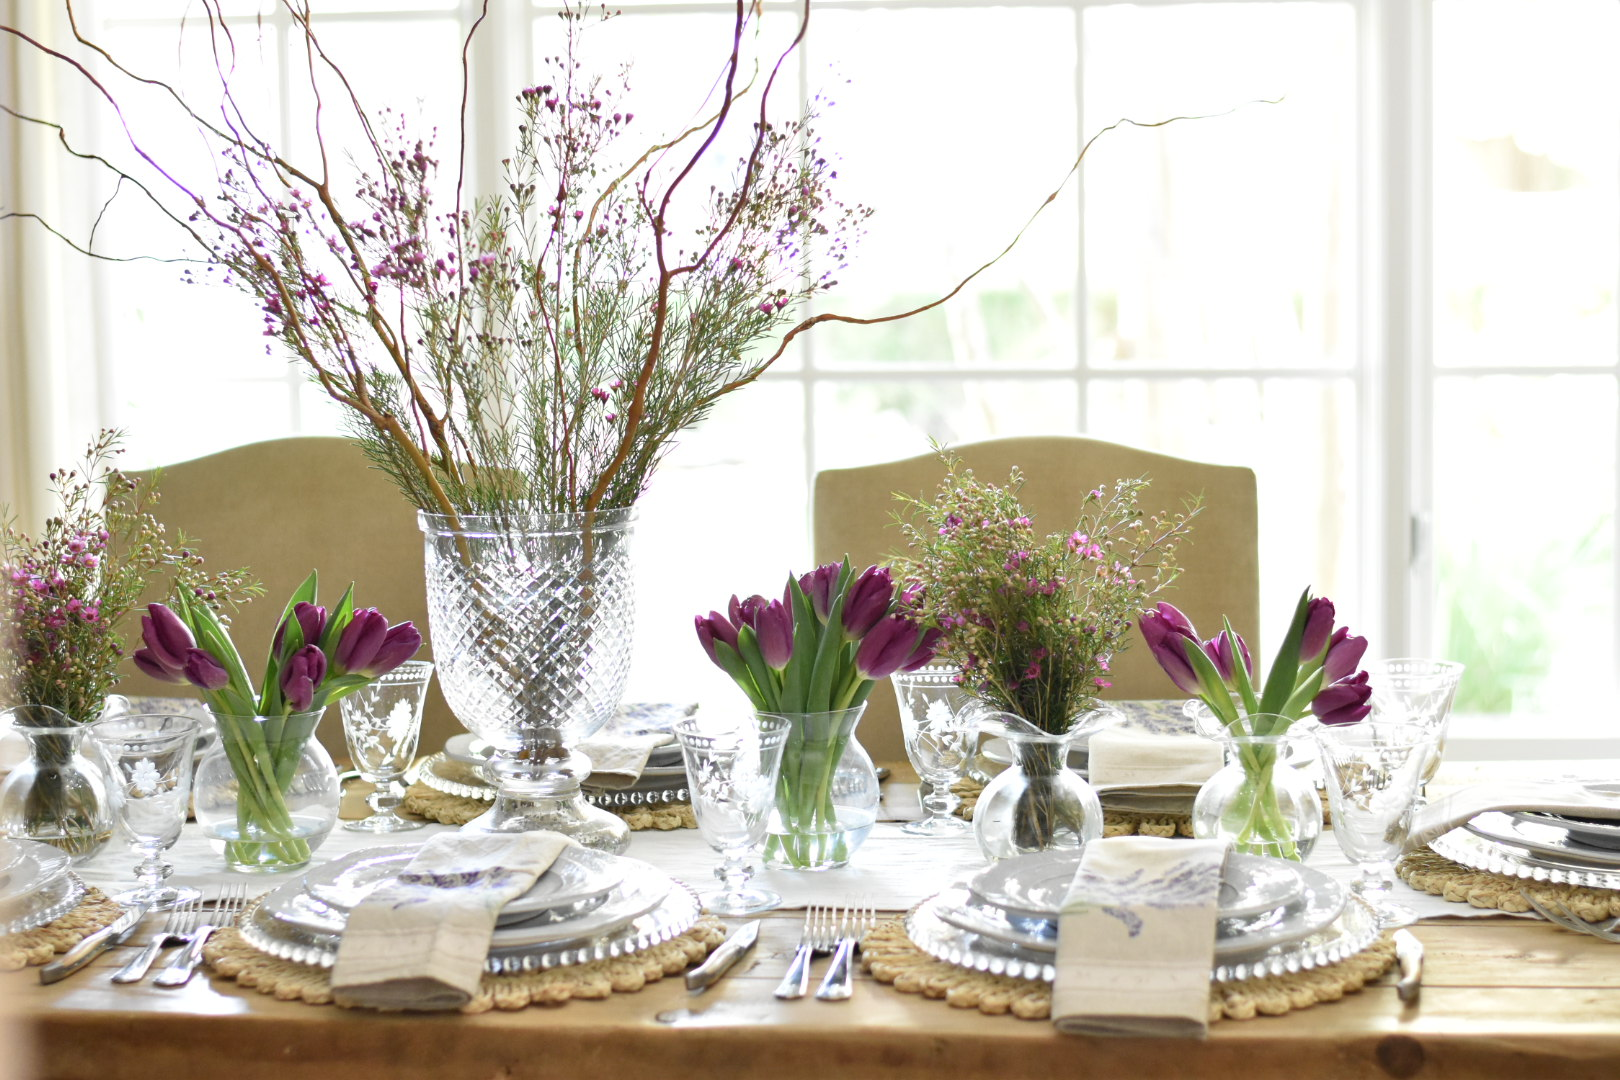 Purple Country Table: How to Use Wood Branches